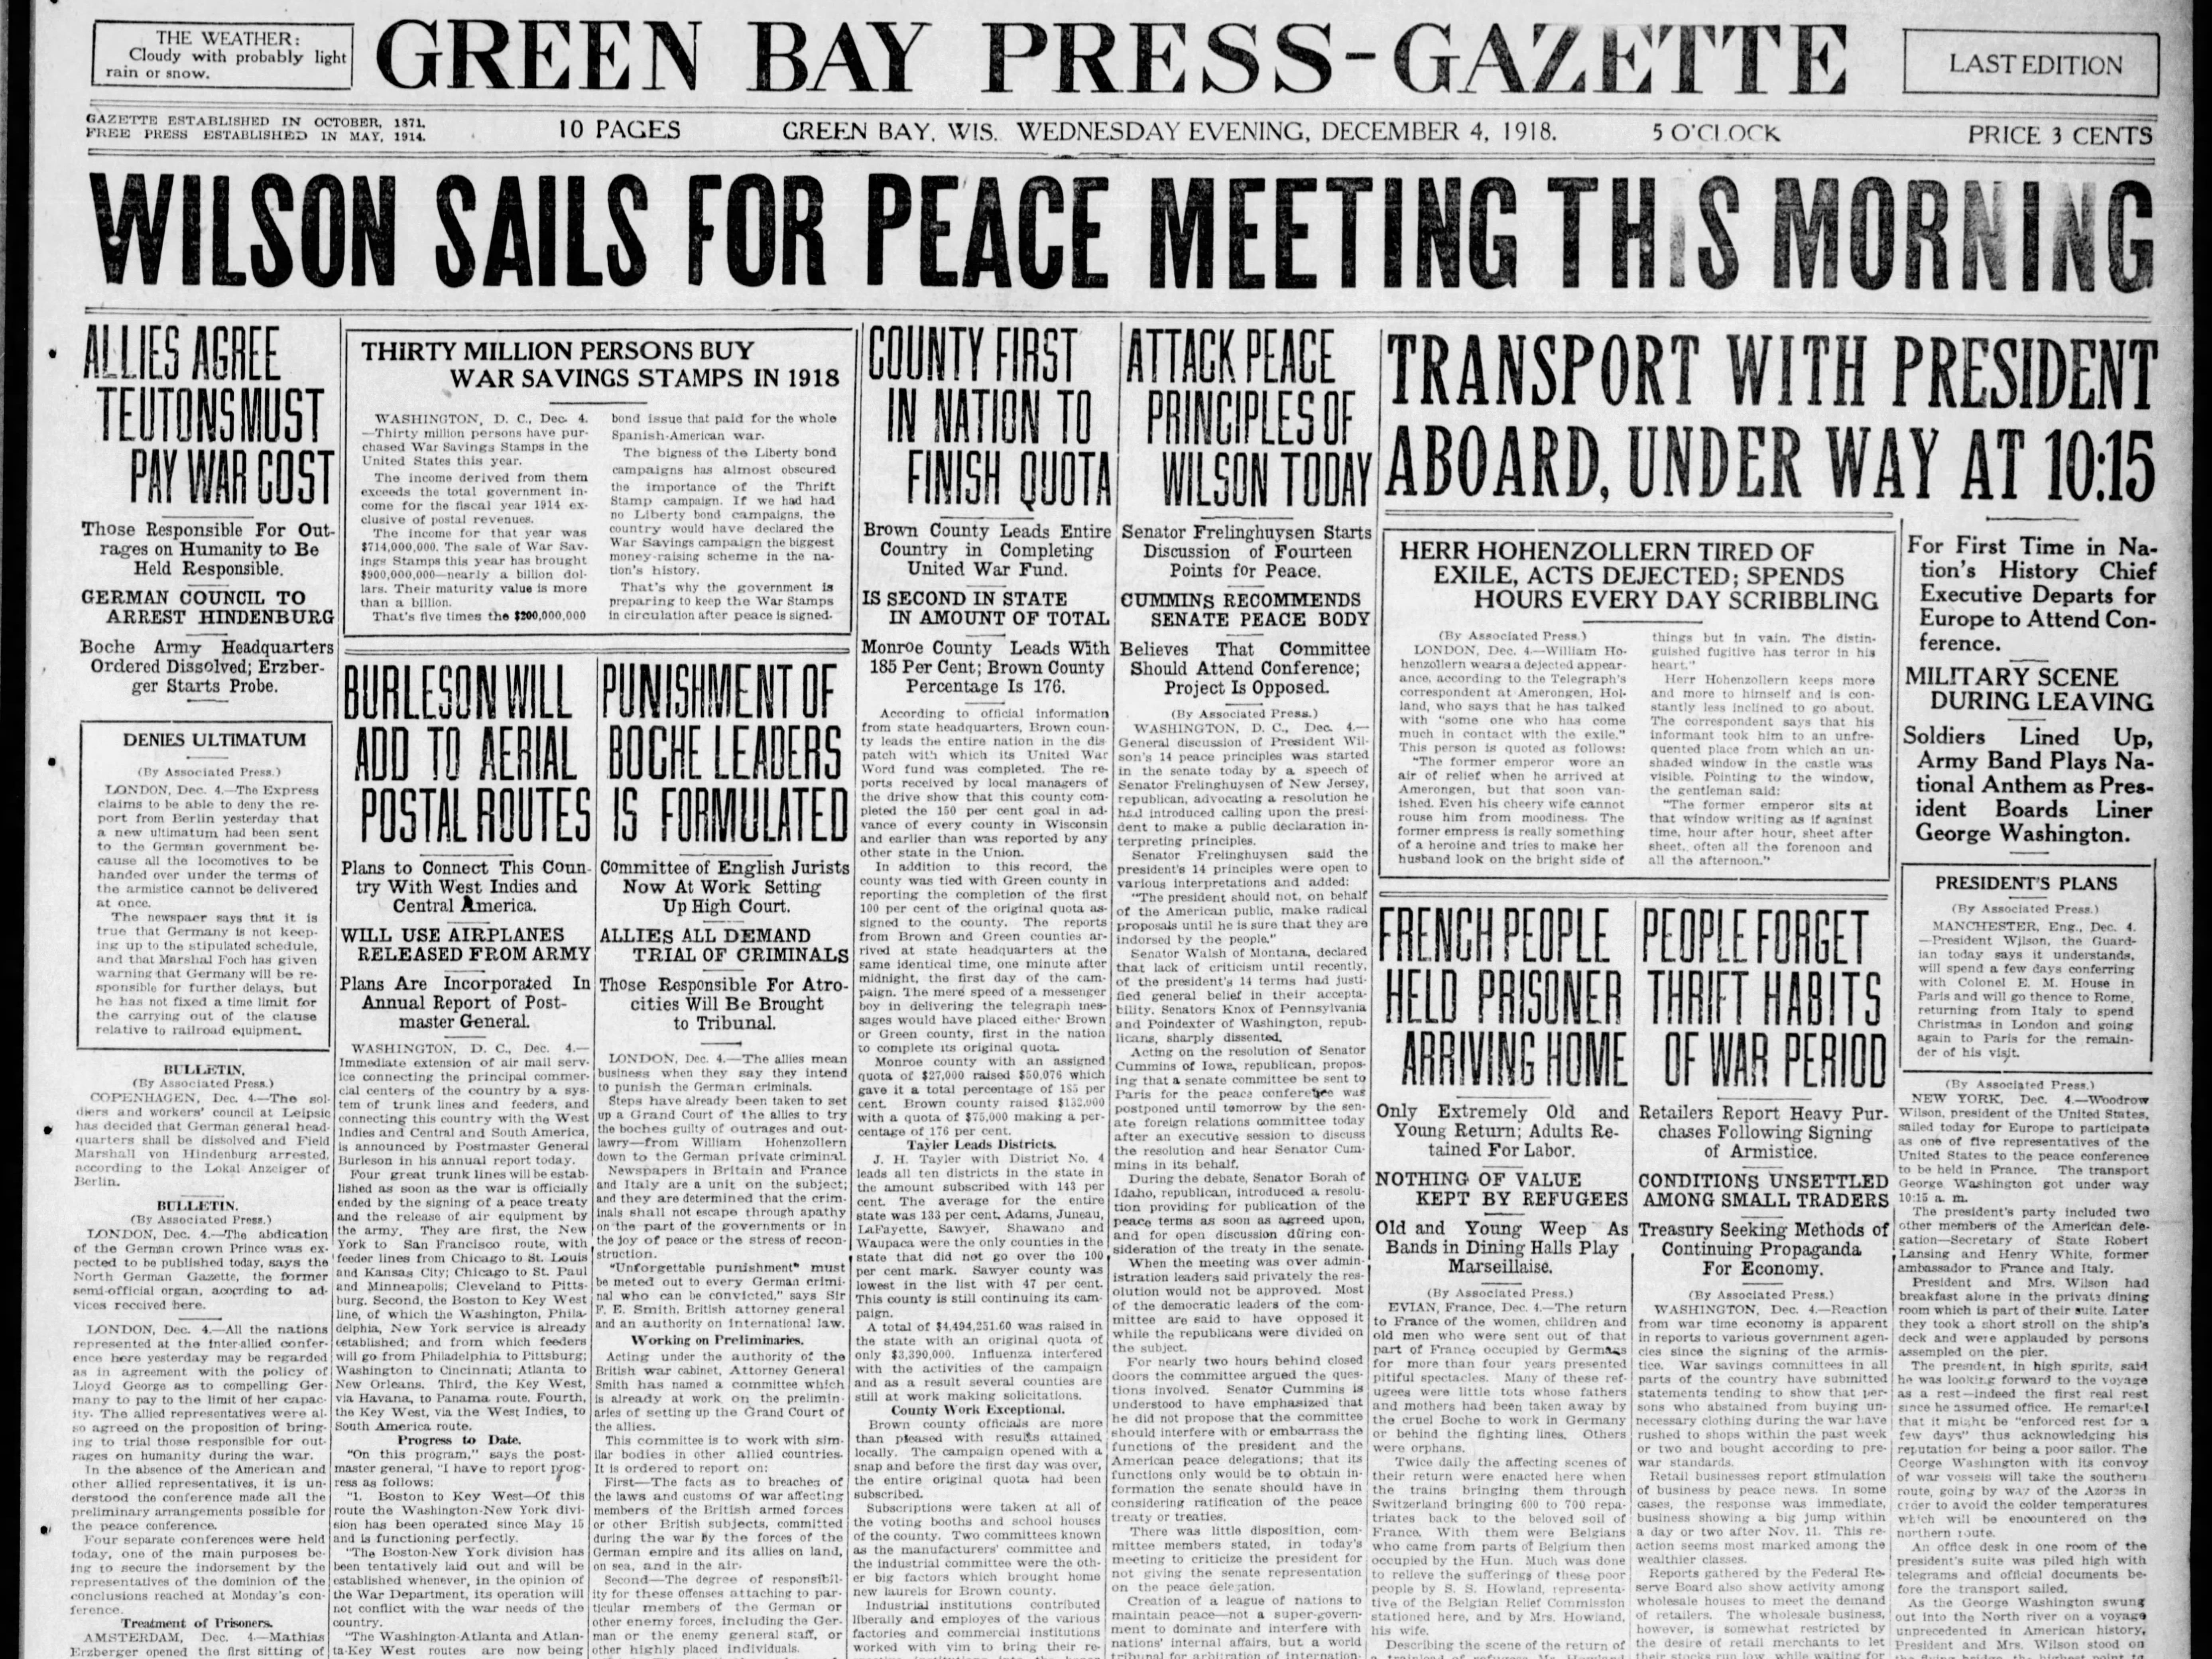 Today in History: Dec. 4, 1918